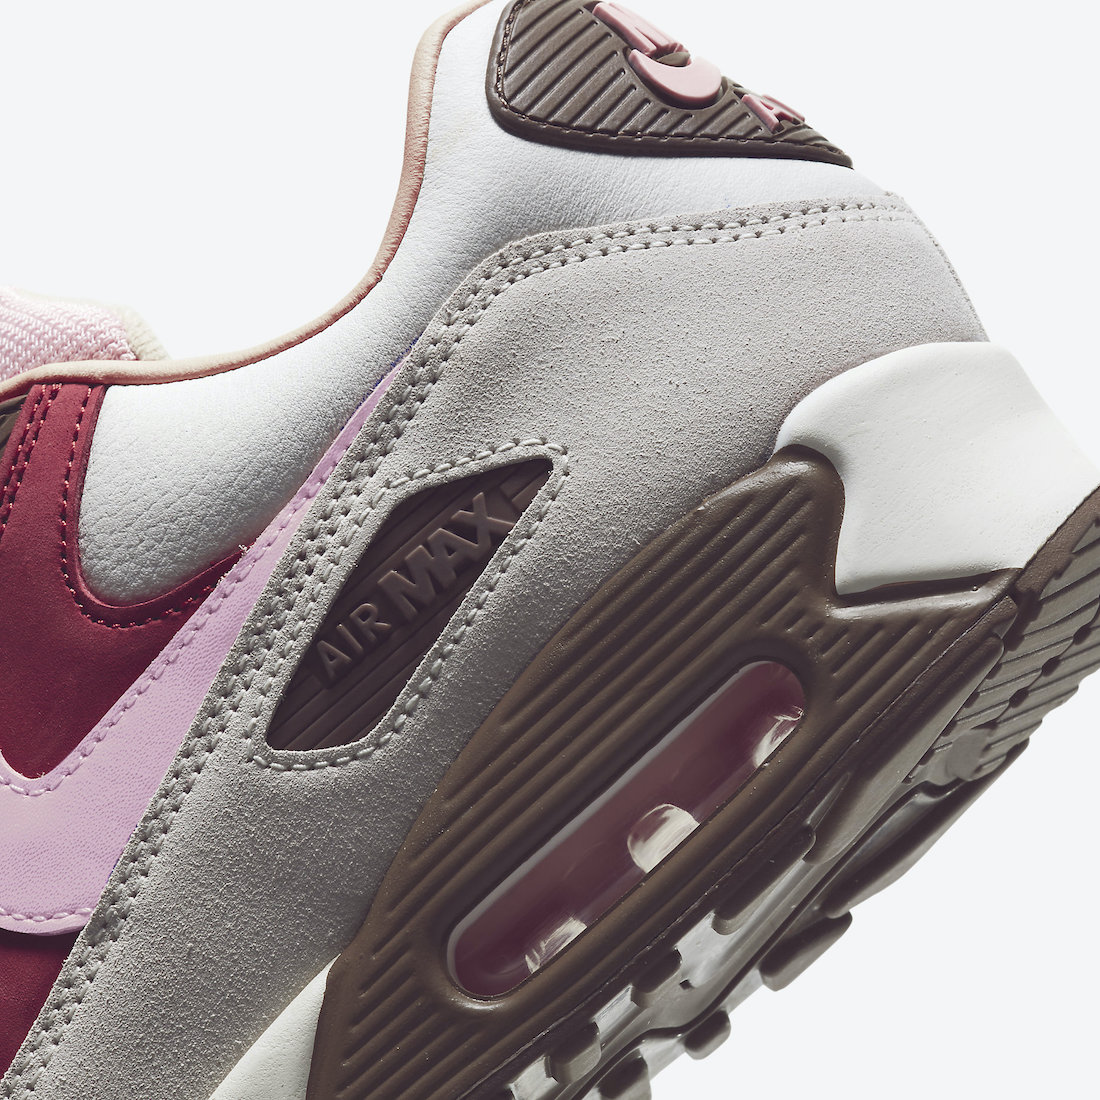 dqm-nike-air-max-90-bacon-release-cu1816-100-release-20210326